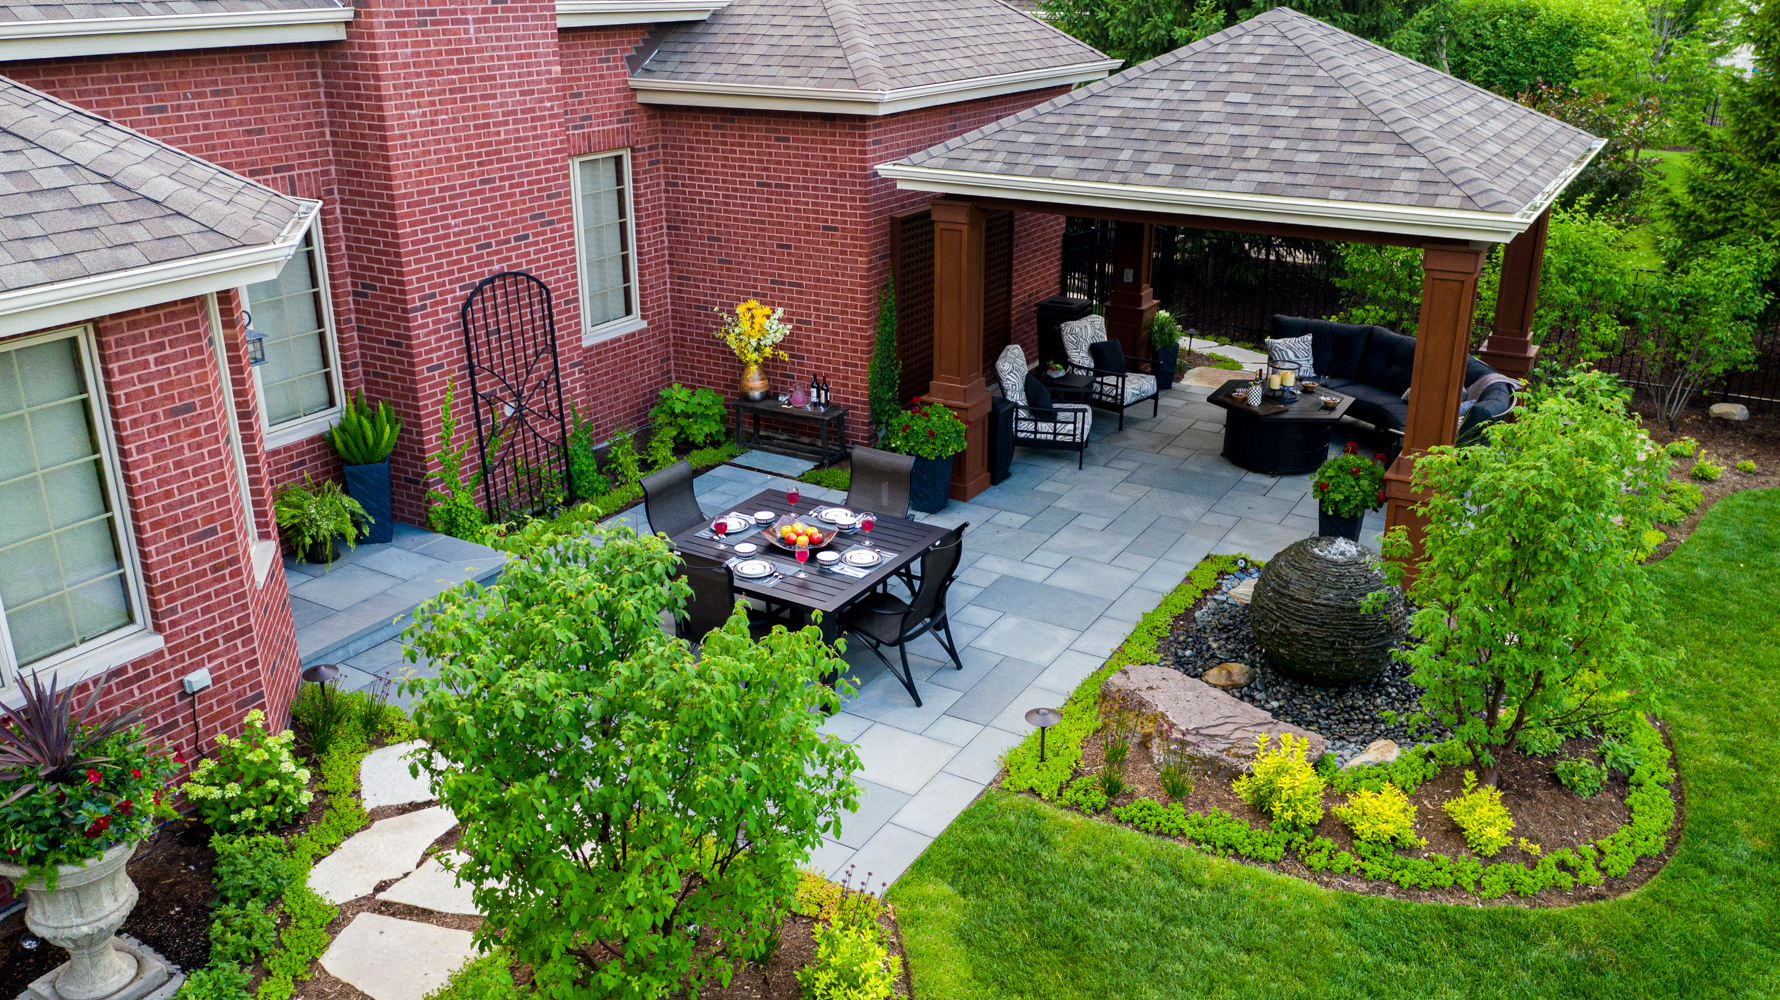 How Much Does a Brick Patio Installation Cost in Naperville, IL?